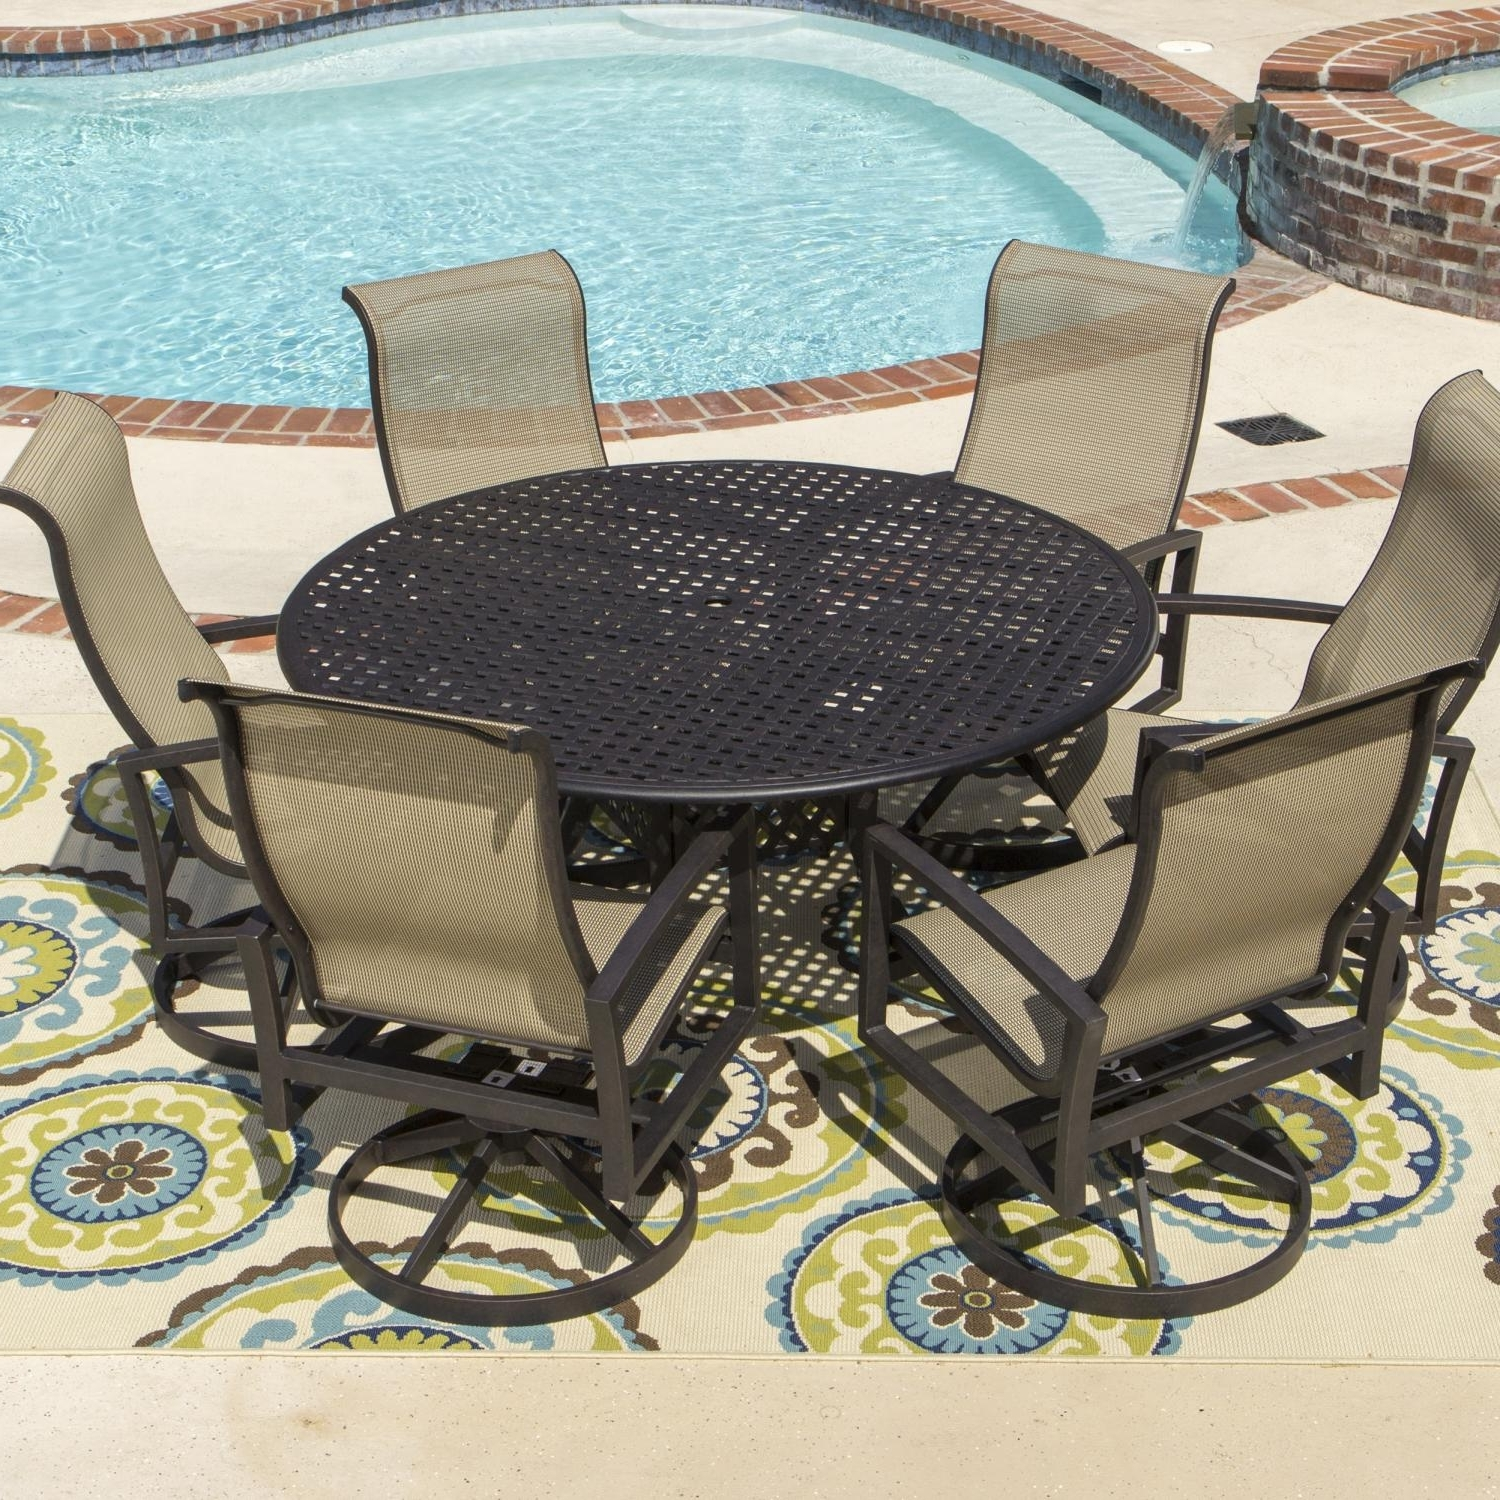 Sling Patio Conversation Sets With Regard To Well Known Acadia 7 Piece Sling Patio Dining Set With Swivel Rockers And Round (View 9 of 20)